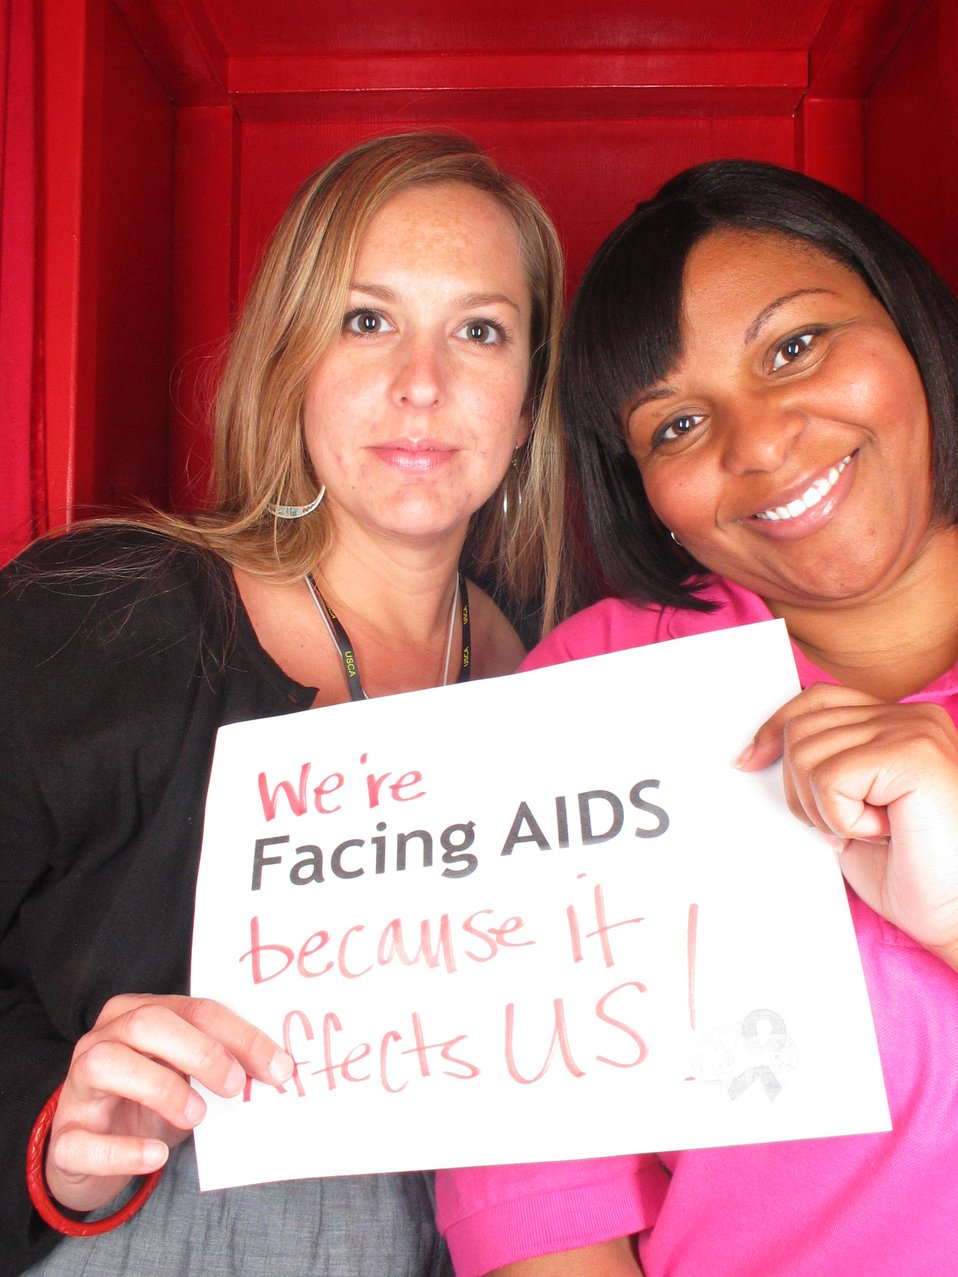 We're Facing AIDS because it affects US!